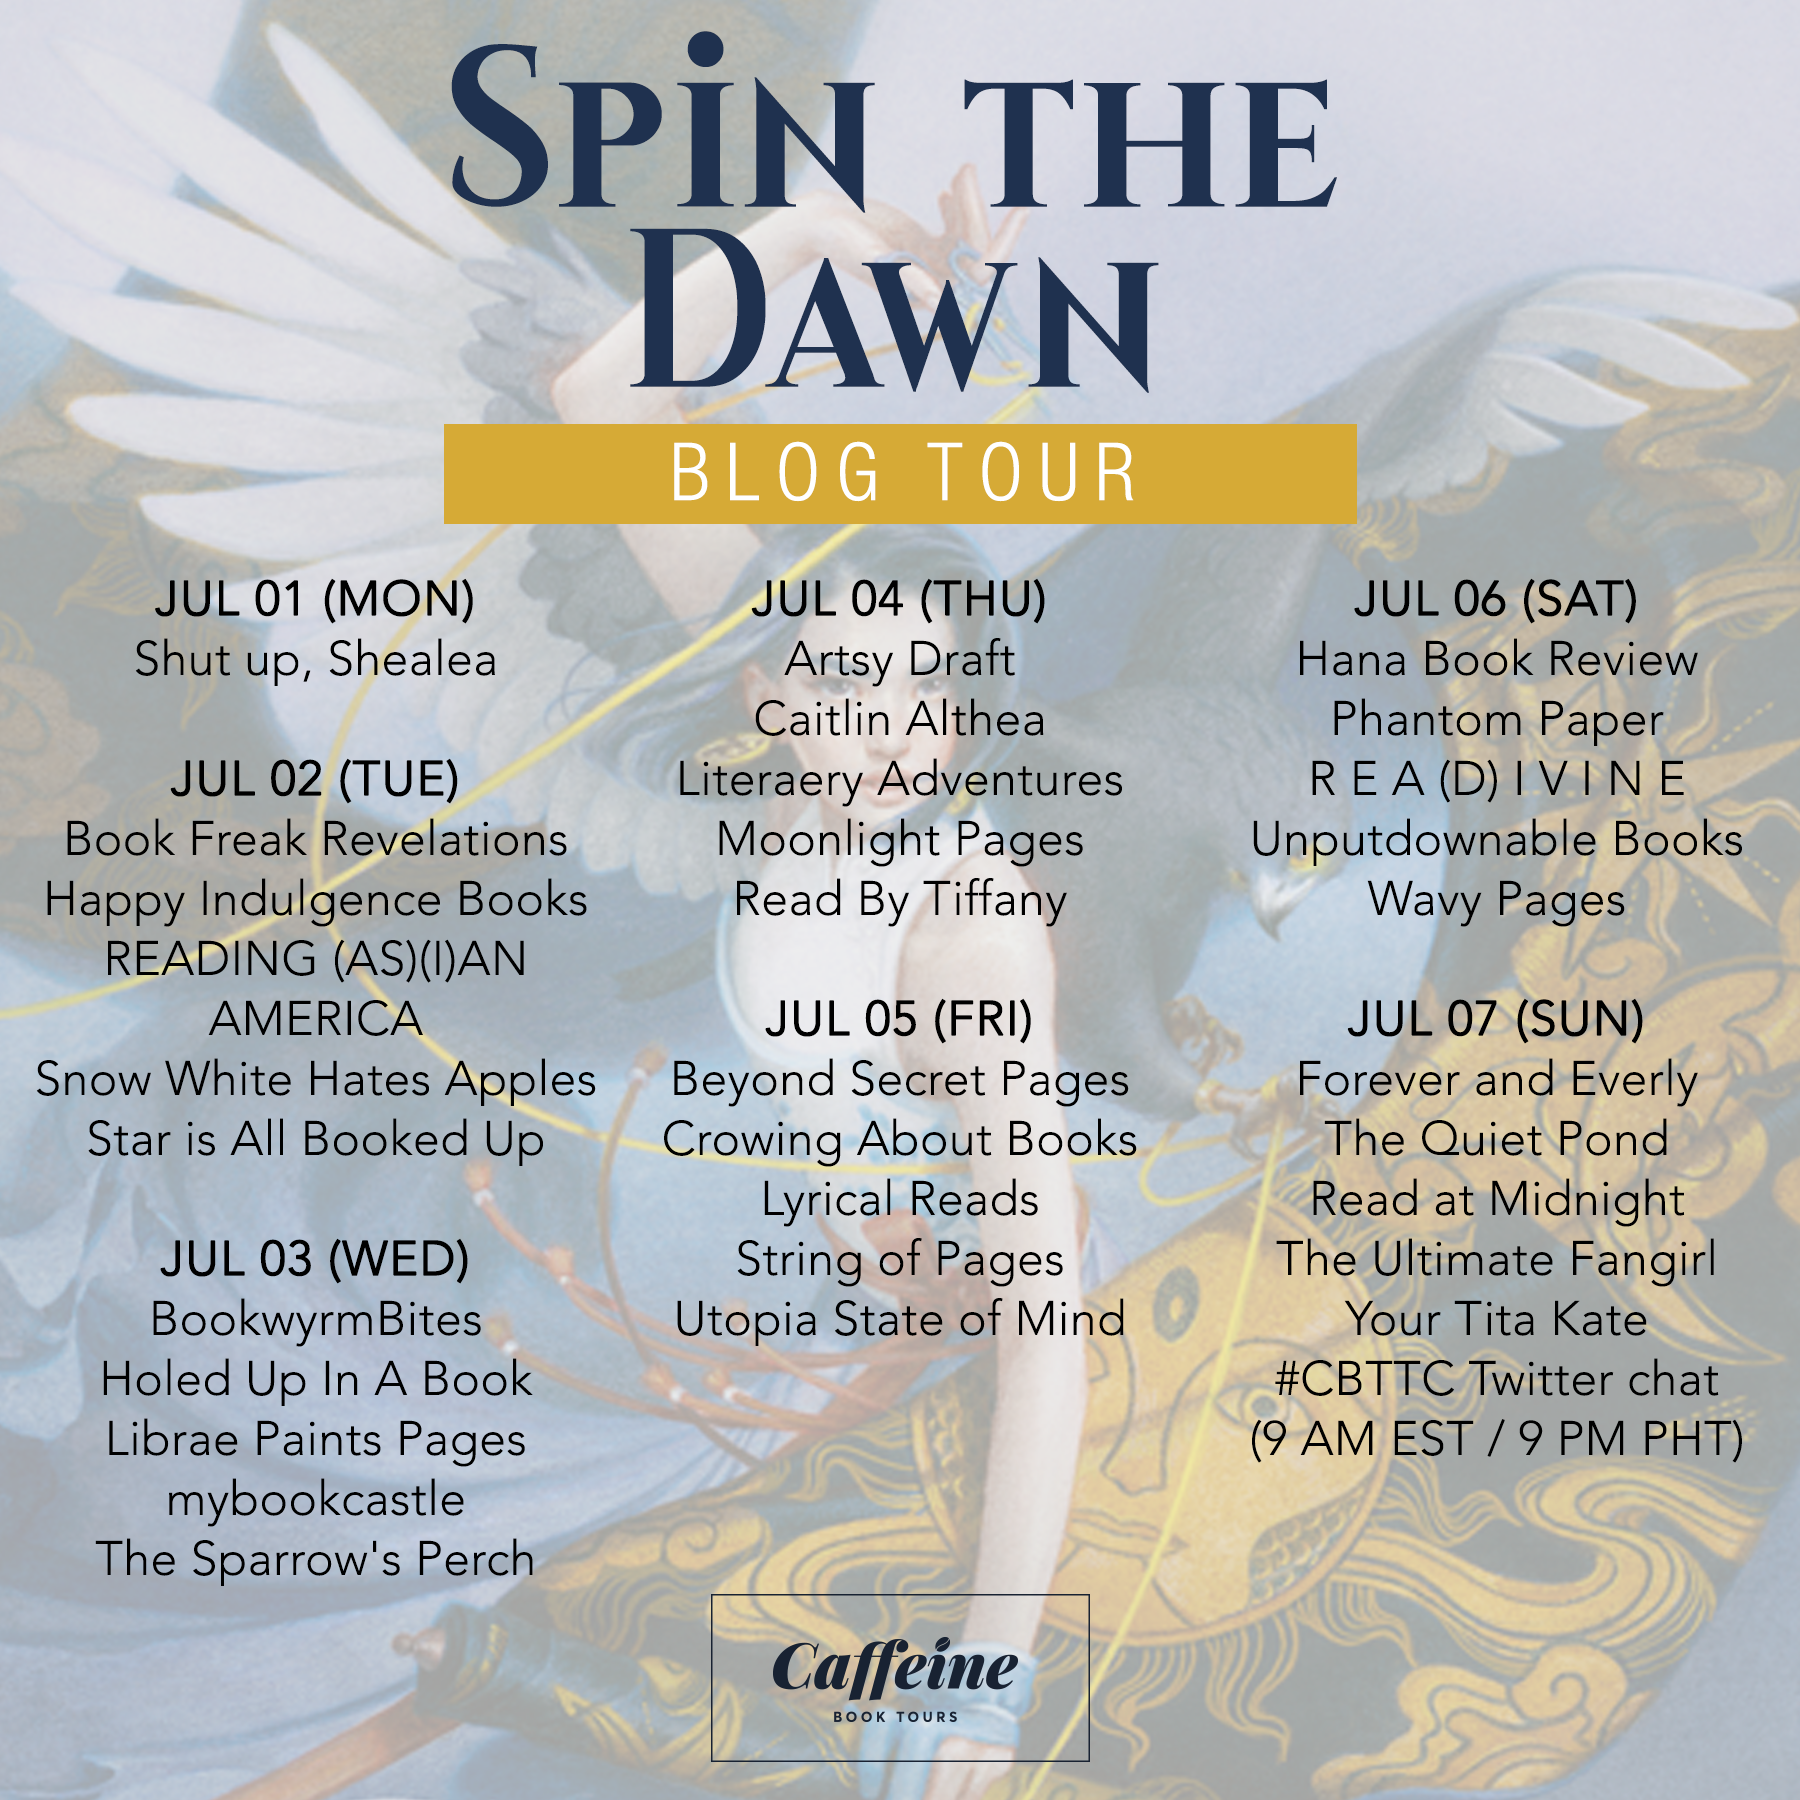 Schedule (Spin the Dawn)